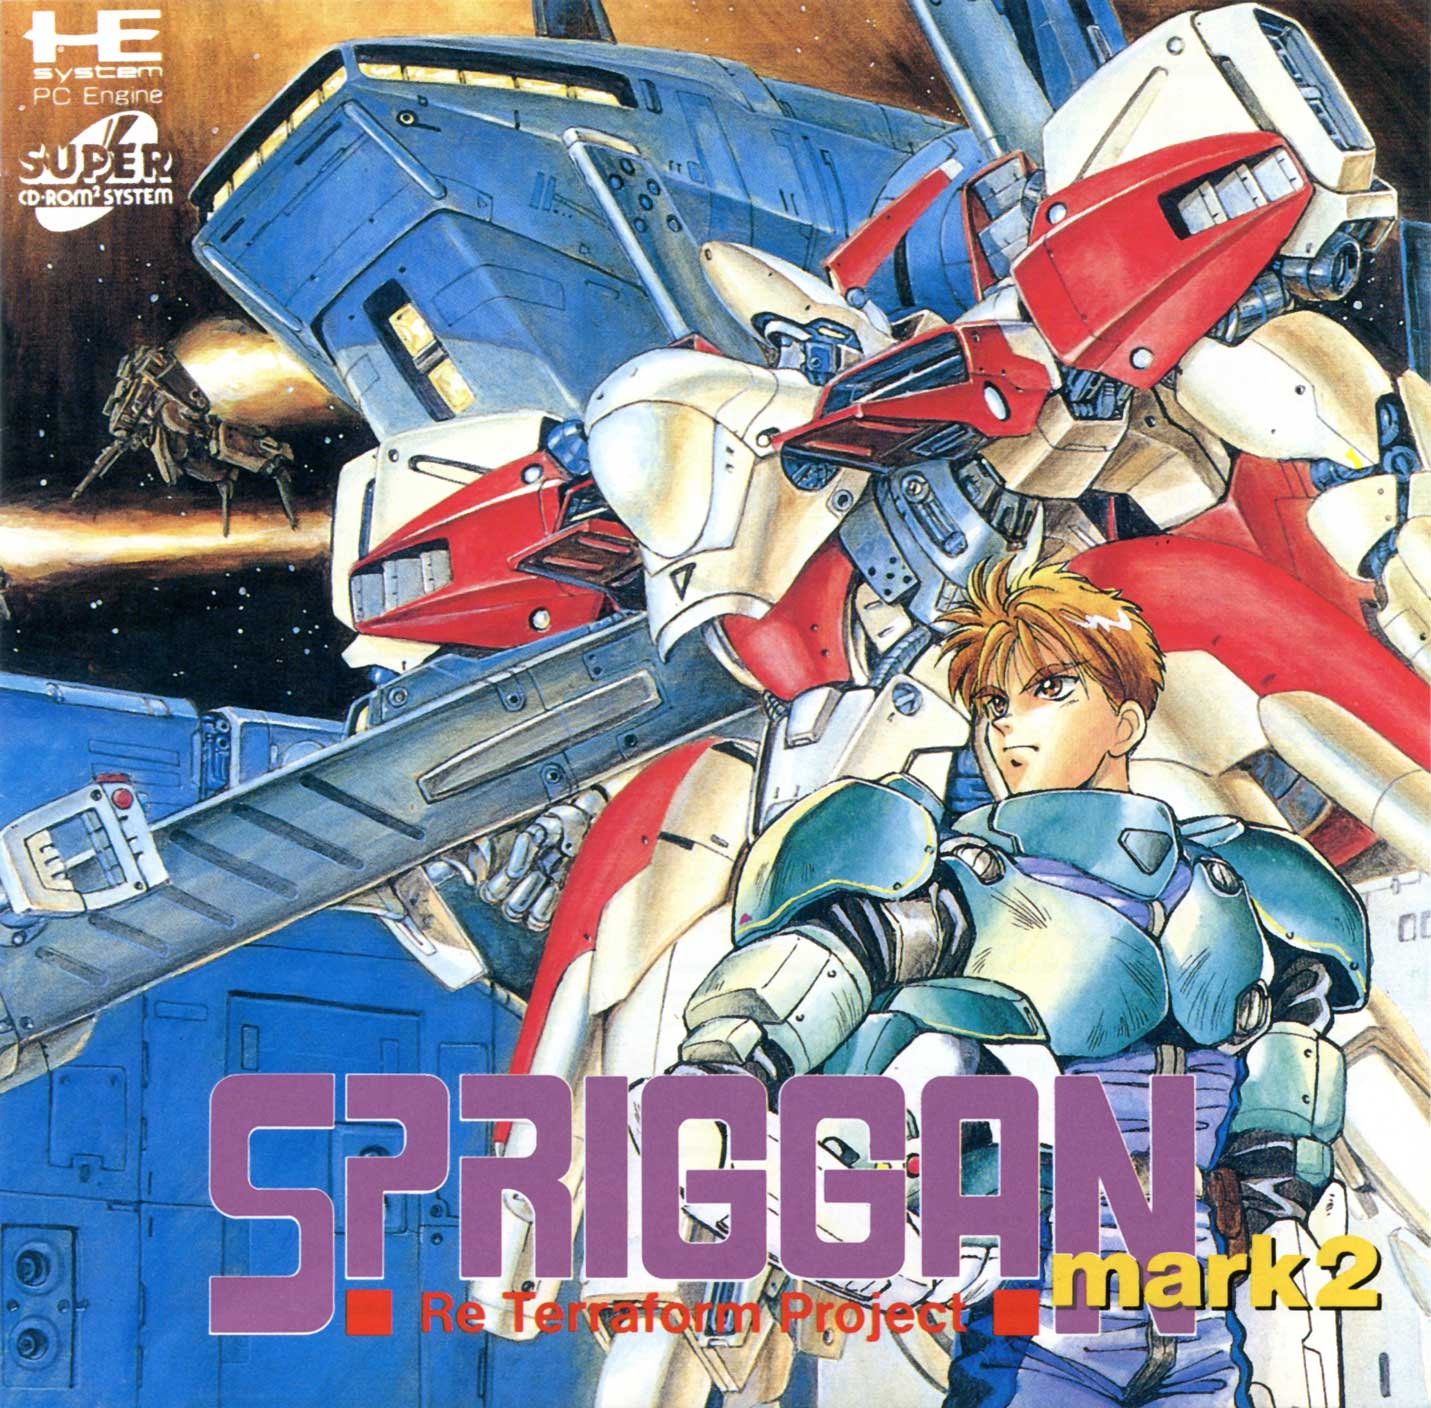 Spriggan Mark 2 Re Terraform Project The PC Engine Software Bible